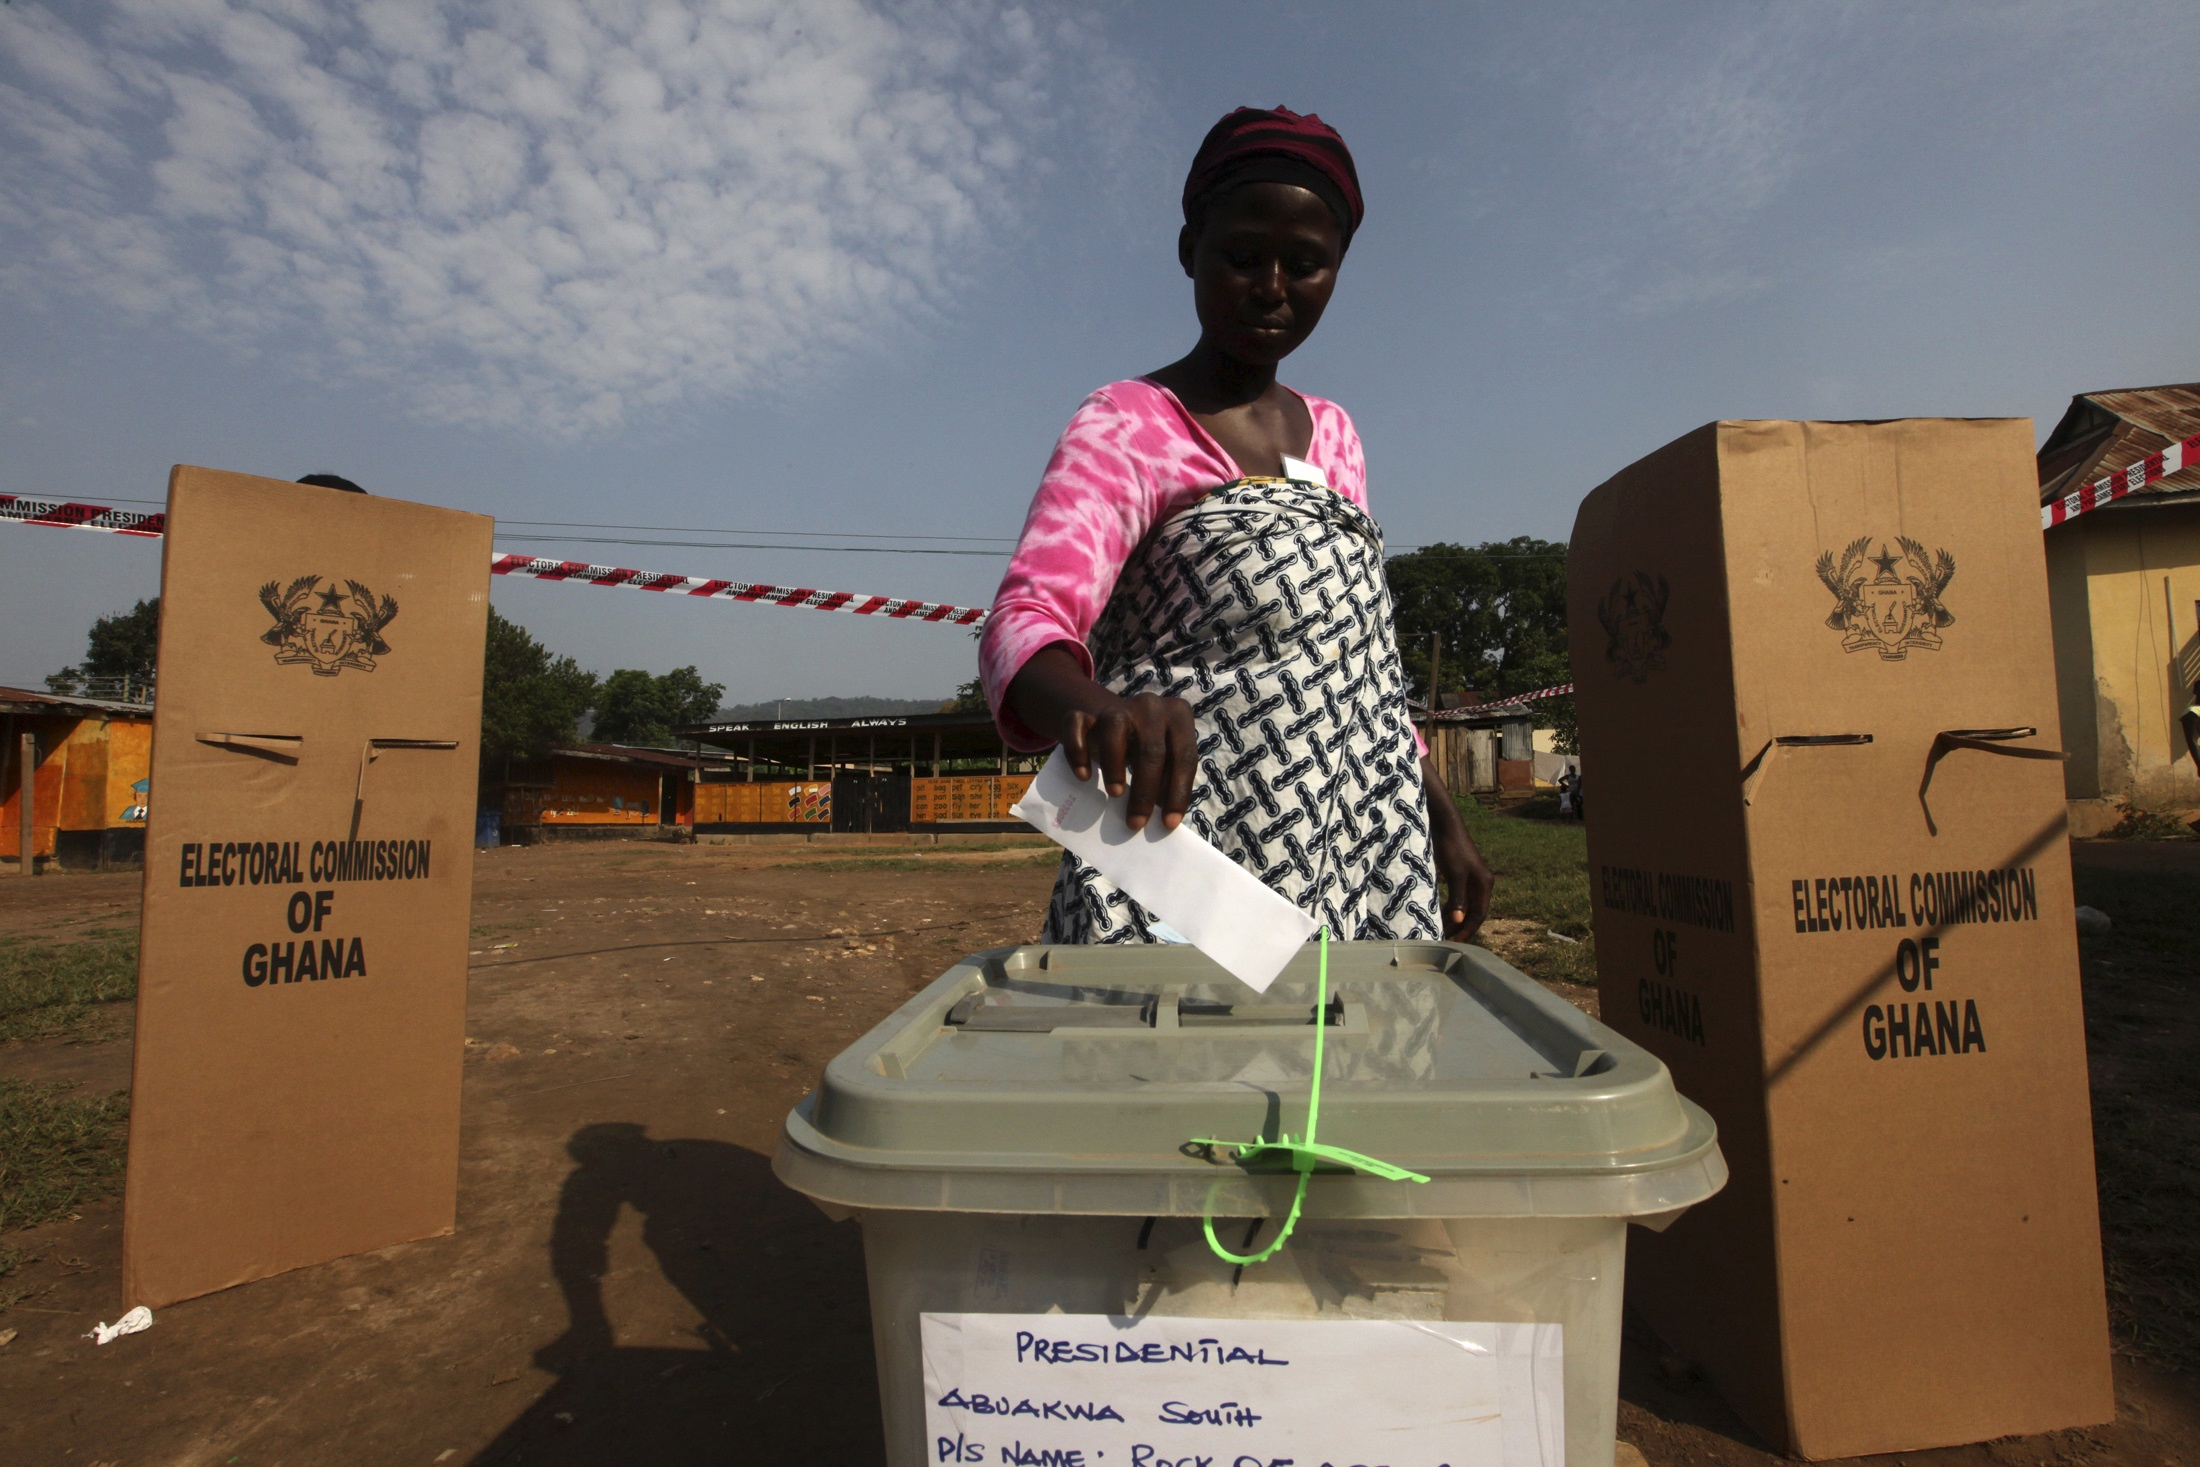 A woman votes at a polling station in Kibi, eastern region of Ghana and stronghold of presidential candidate Nana Akufo-Addo of the opposition New Patriotic Party (NPP), December 7, 2012. Ghanaians choose on Friday who will run one of Africa's most stable democracies as a surge in oil revenues promises to boost development and economic growth. Ghana has earned a reputation as an oasis of stability and progress in West Africa, a part of the world better known for civil wars, coups, entrenched poverty and corruption. REUTERS/Luc Gnago (GHANA - Tags: POLITICS ELECTIONS) - GM1E8C71DSM01